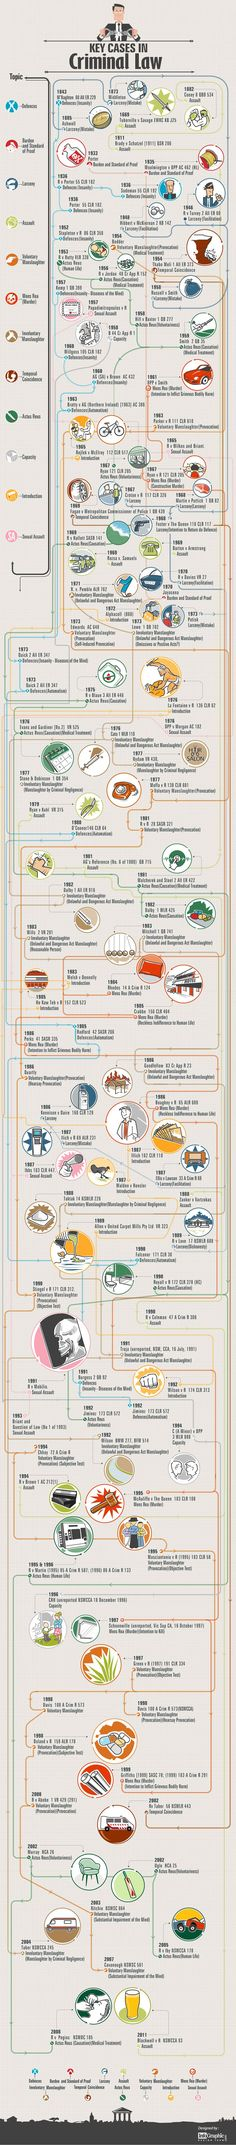 Key Cases In Criminal Law Infographic #infographic